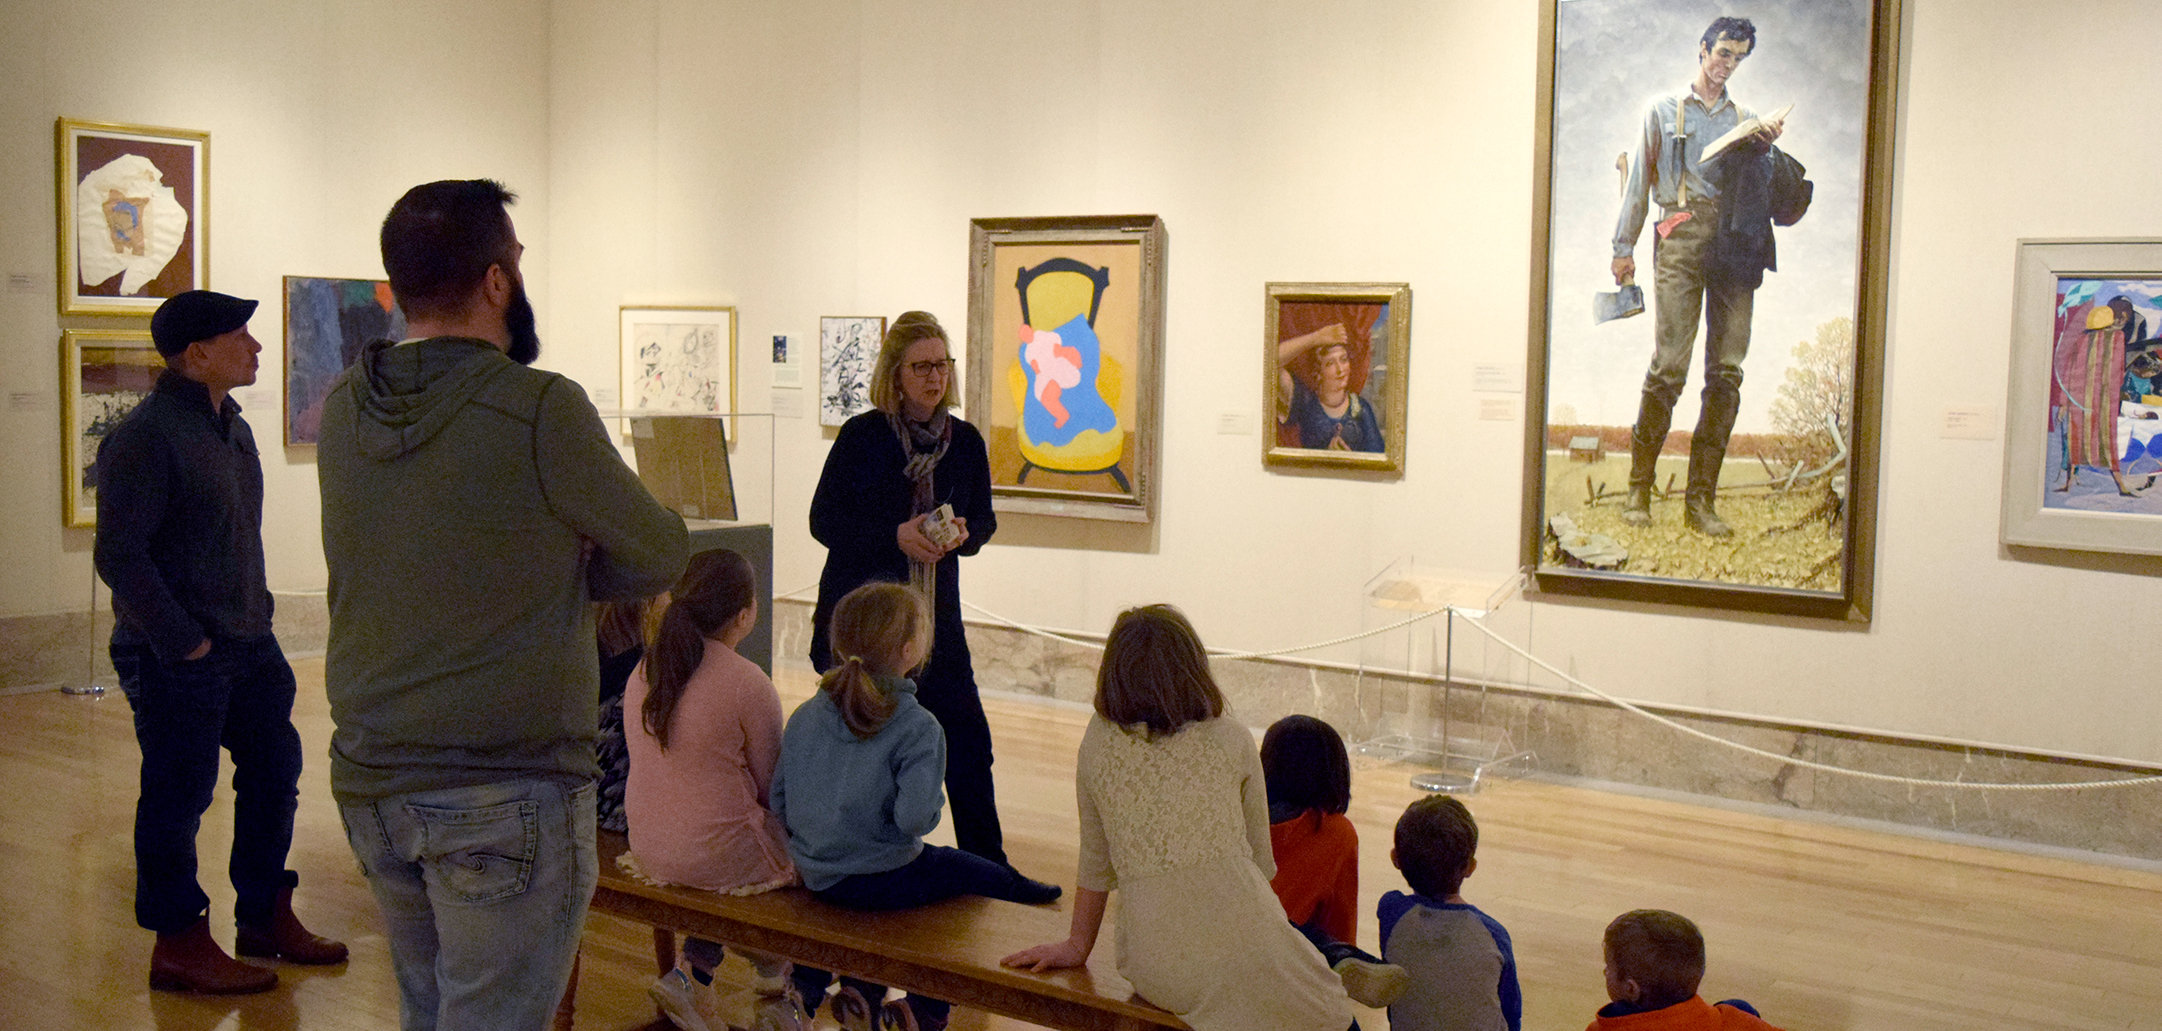 docent speaking to group of children in front of rockwell painting